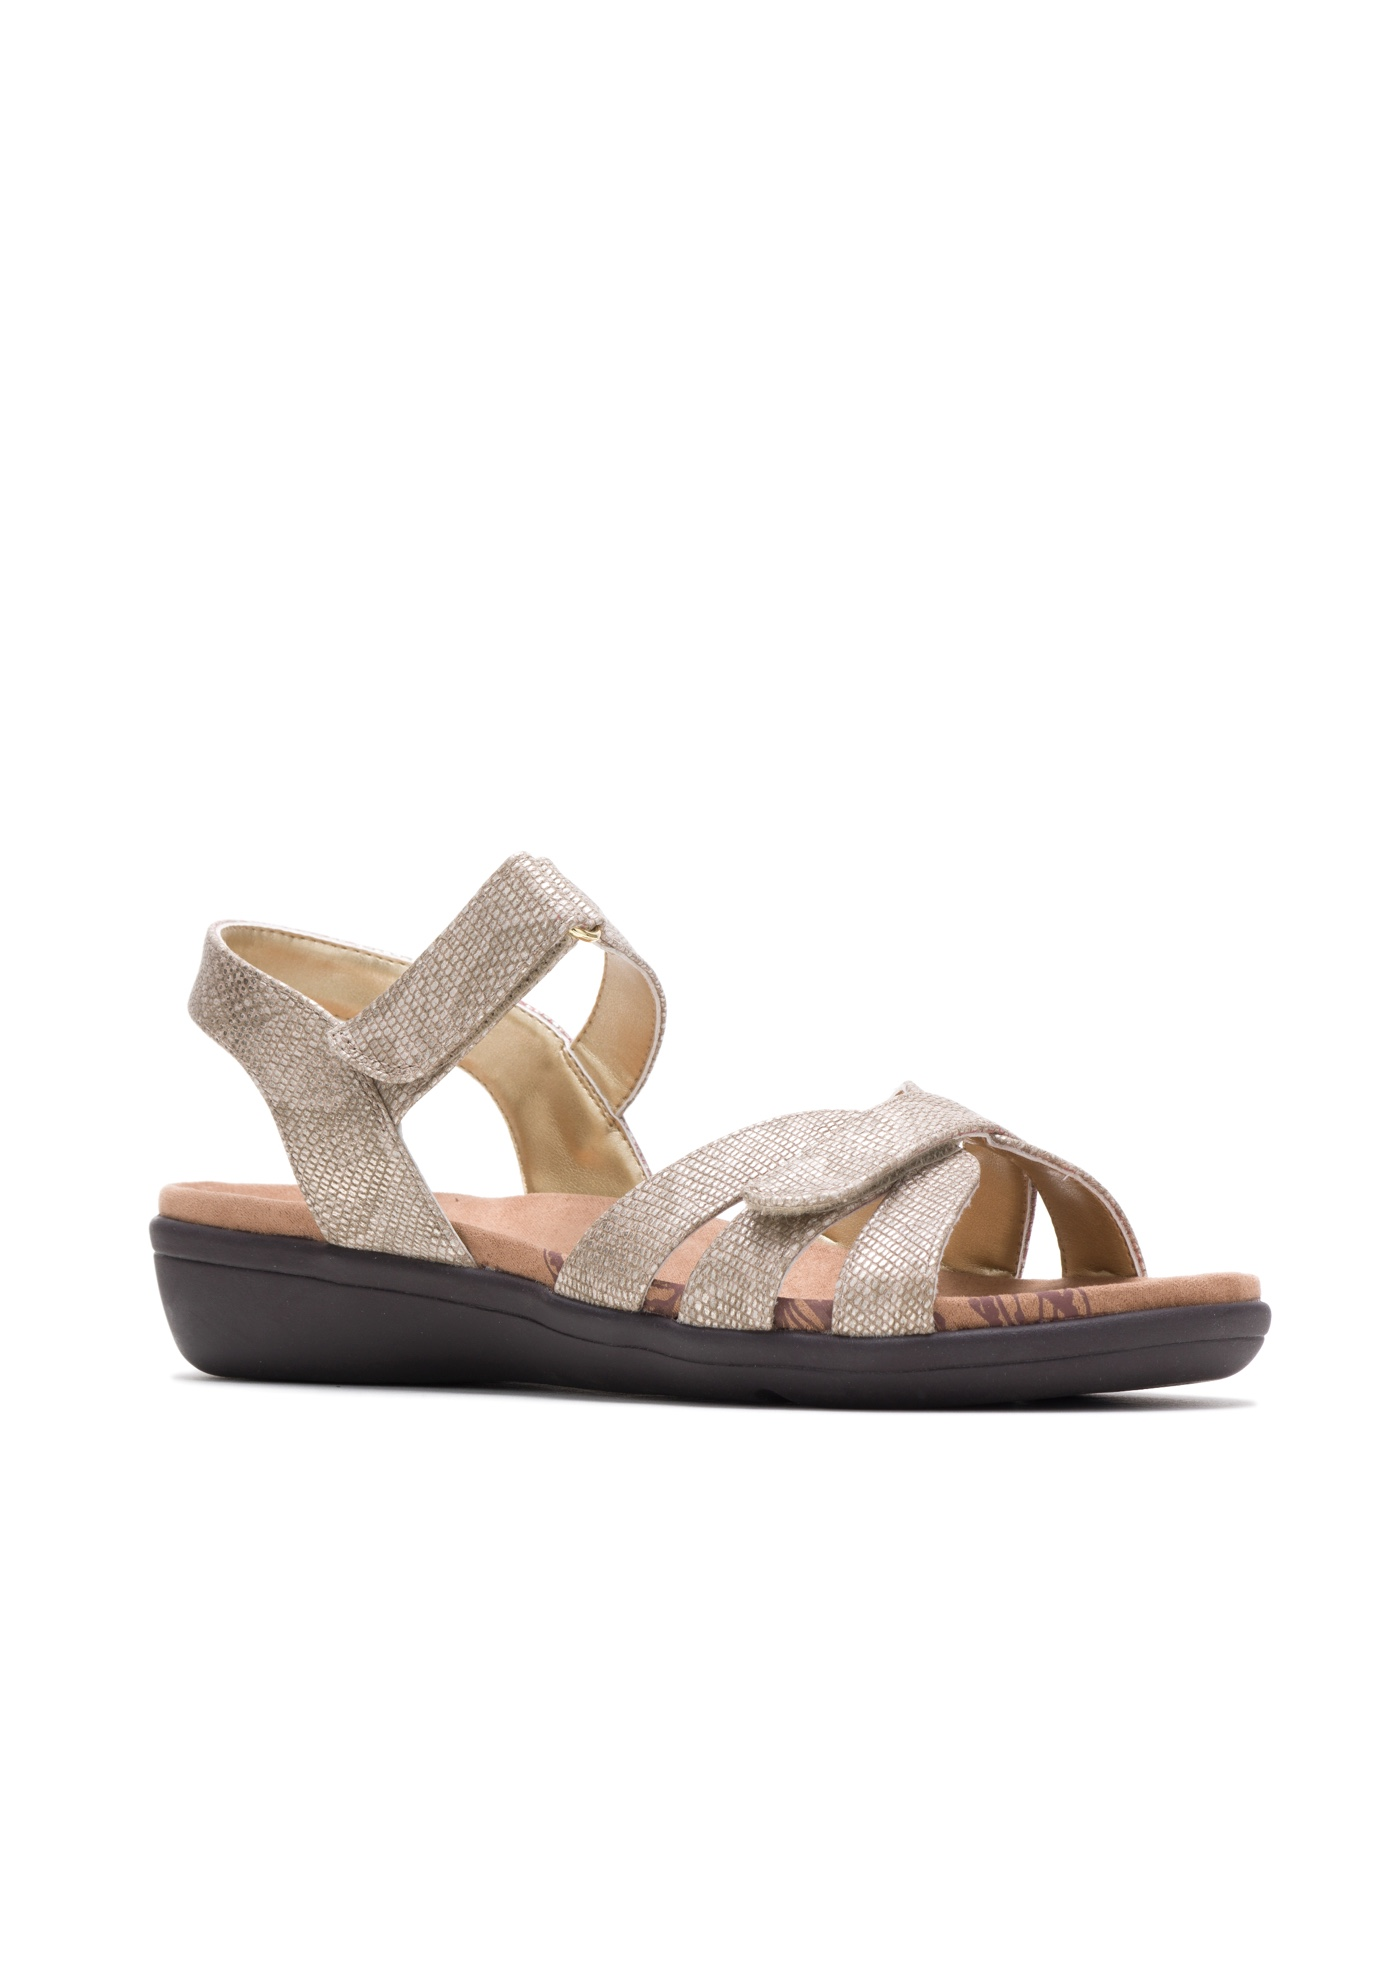 Pearle Sandals ,